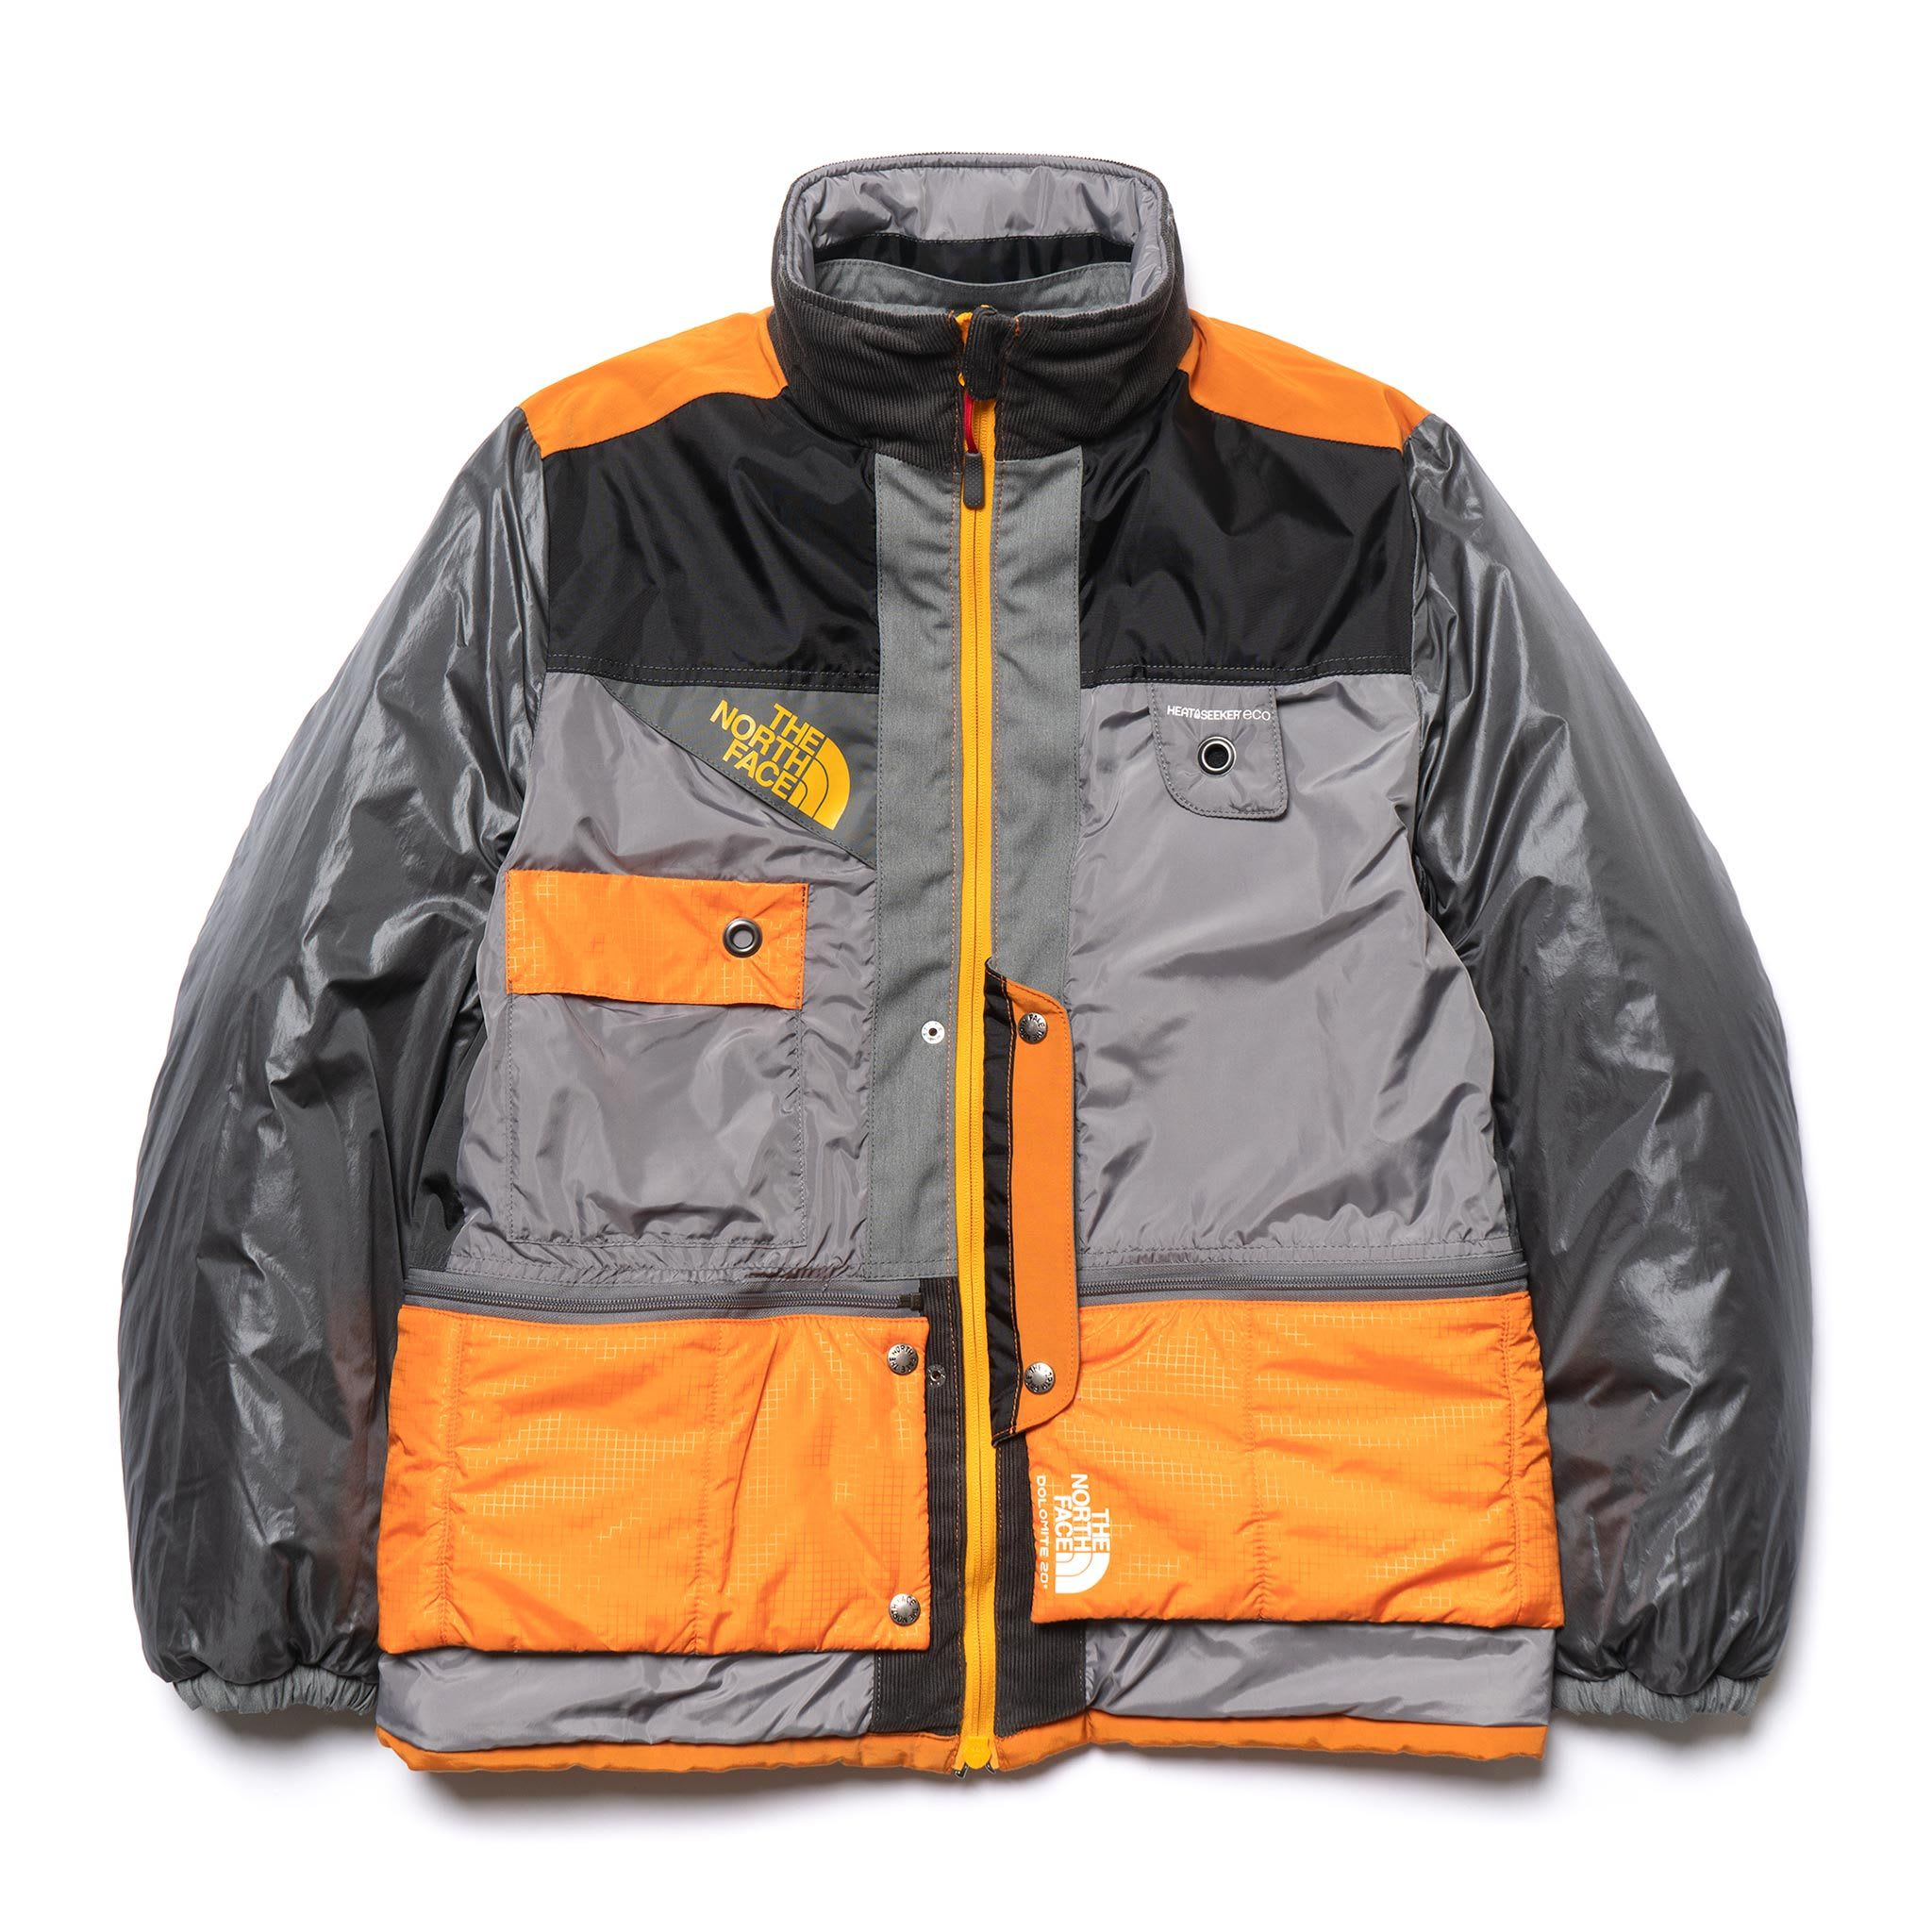 Junya Watanabe continues to deconstruct The North Face equipment and turn  them into wearable garments. After utilizing duffle bags and backpacks 078804e60